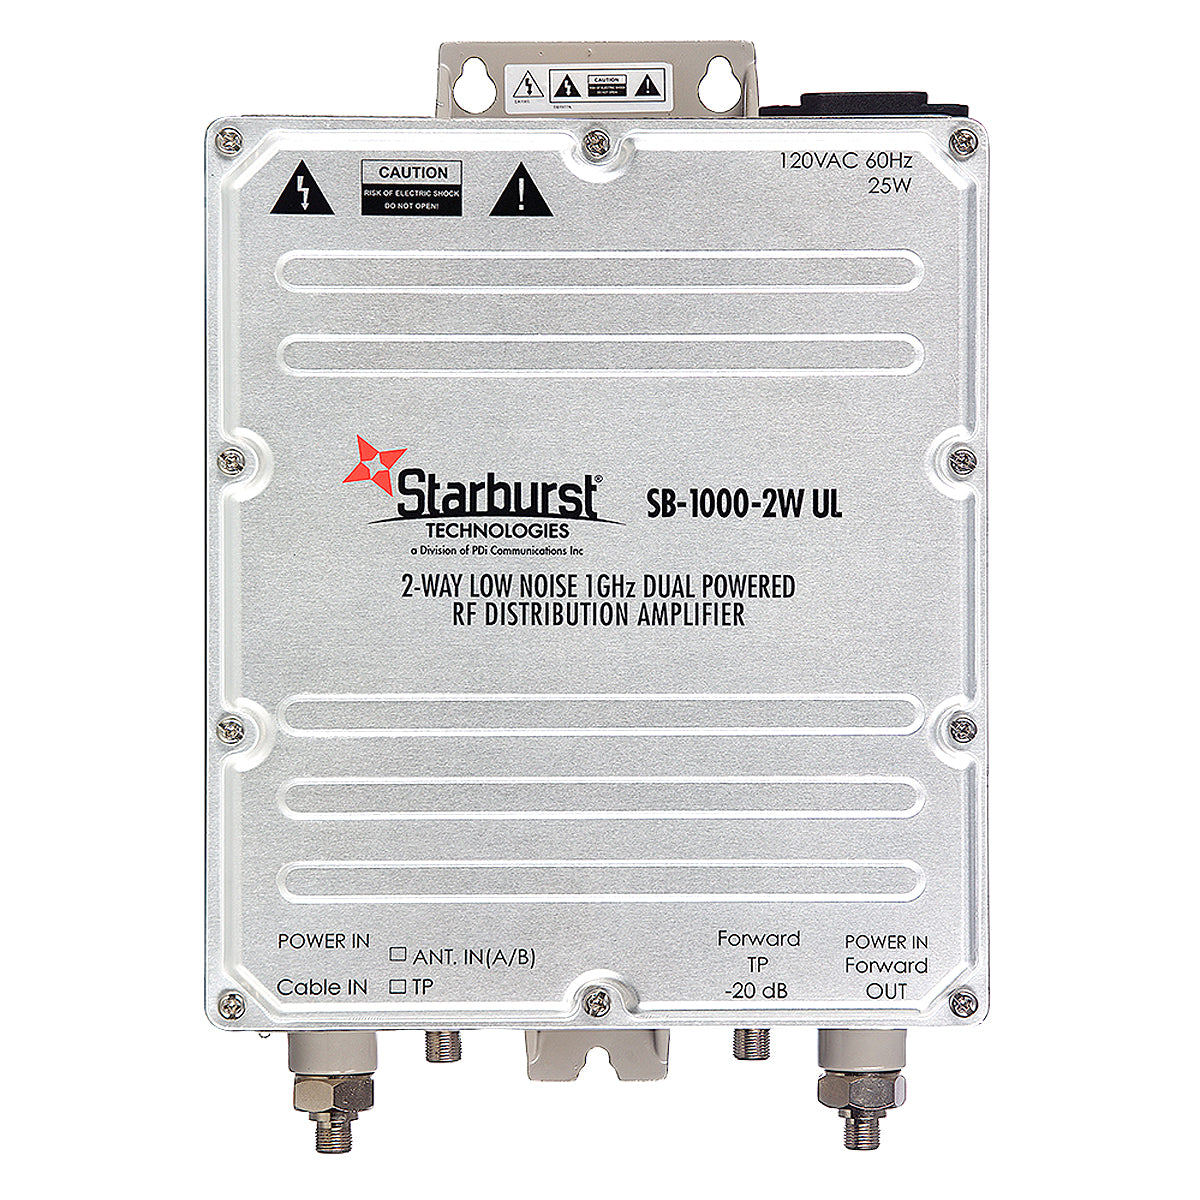 SB-1000-2W-UL CATV Distribution Amplifier Low Noise 33dB Gain 2 Way 1 GHz Dual AC or CATV 60 - 90 Volt Power